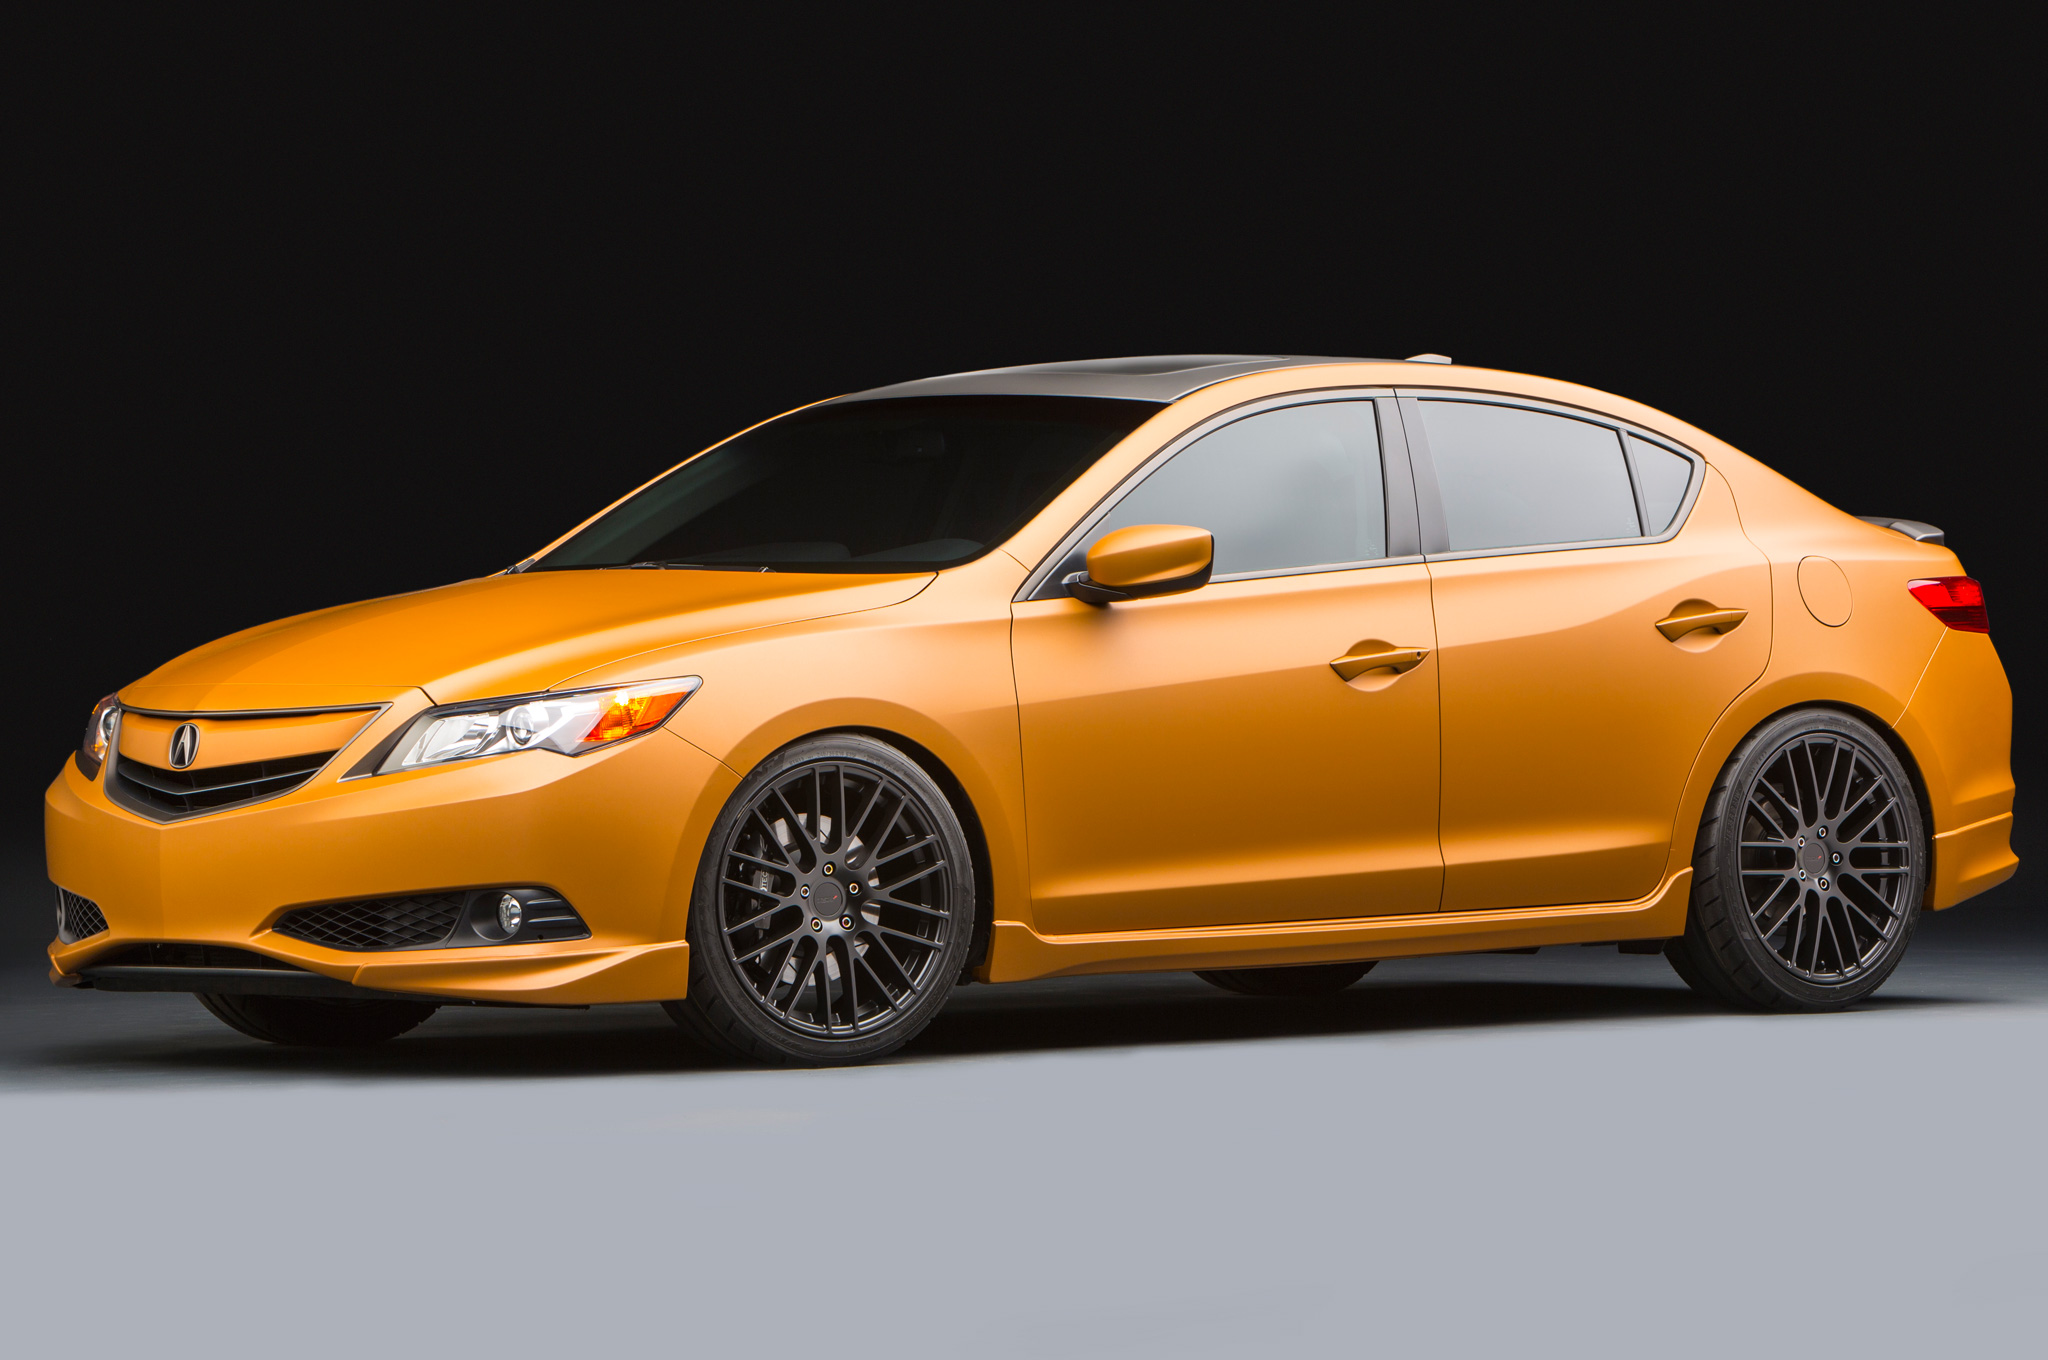 Supercharged Acura ILX VIPStyle RLX Unveiled At SEMA Show - Acura aftermarket parts